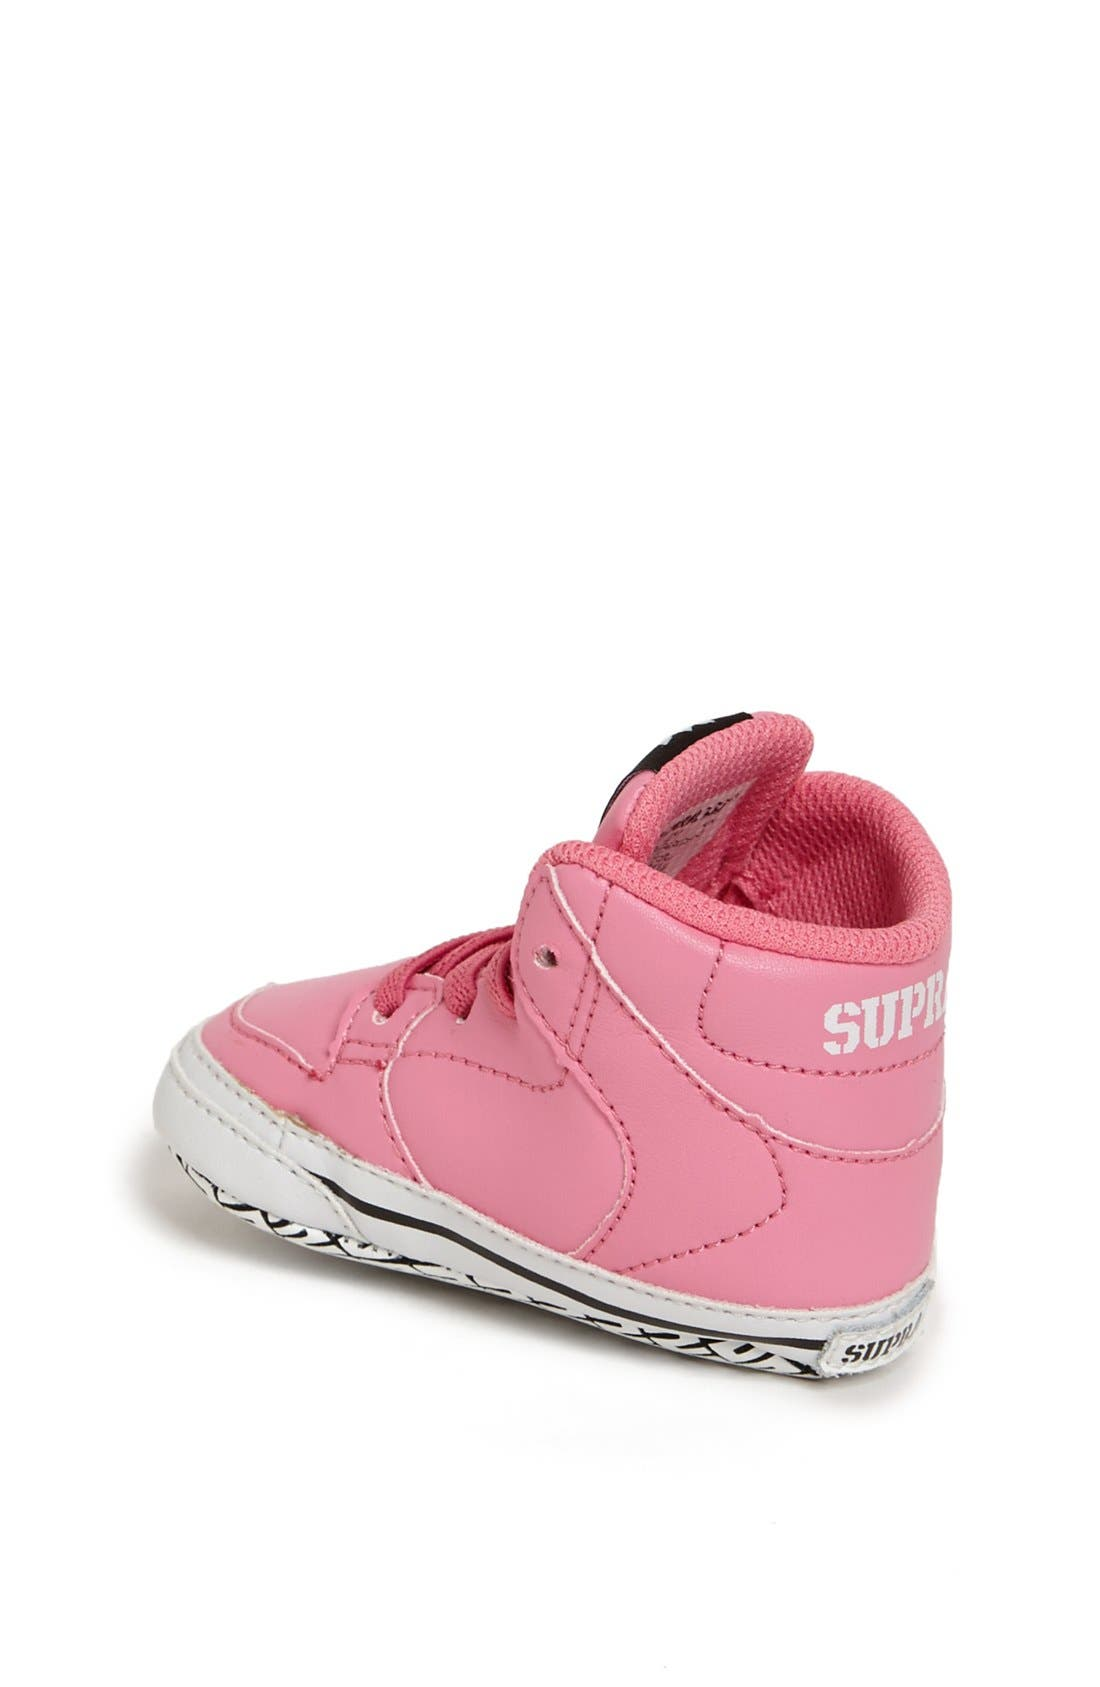 Alternate Image 2  - Supra 'Vaider' Crib Shoe (Baby)